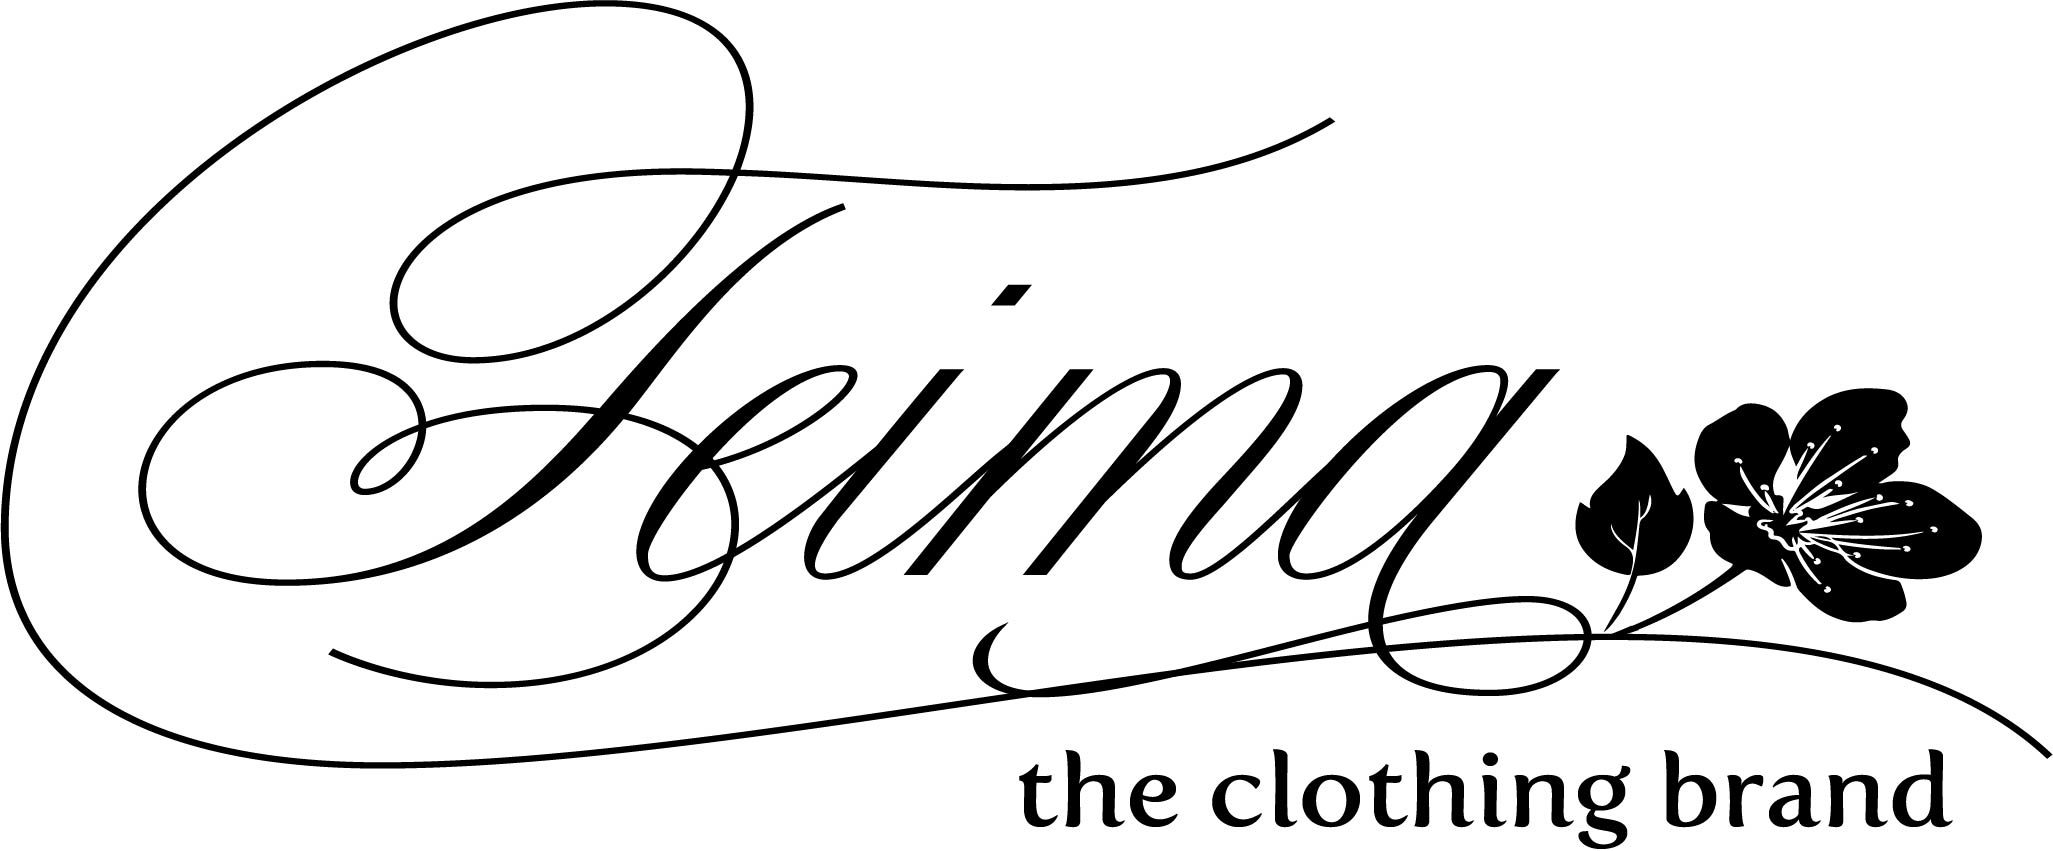 Teima – the clothing brand